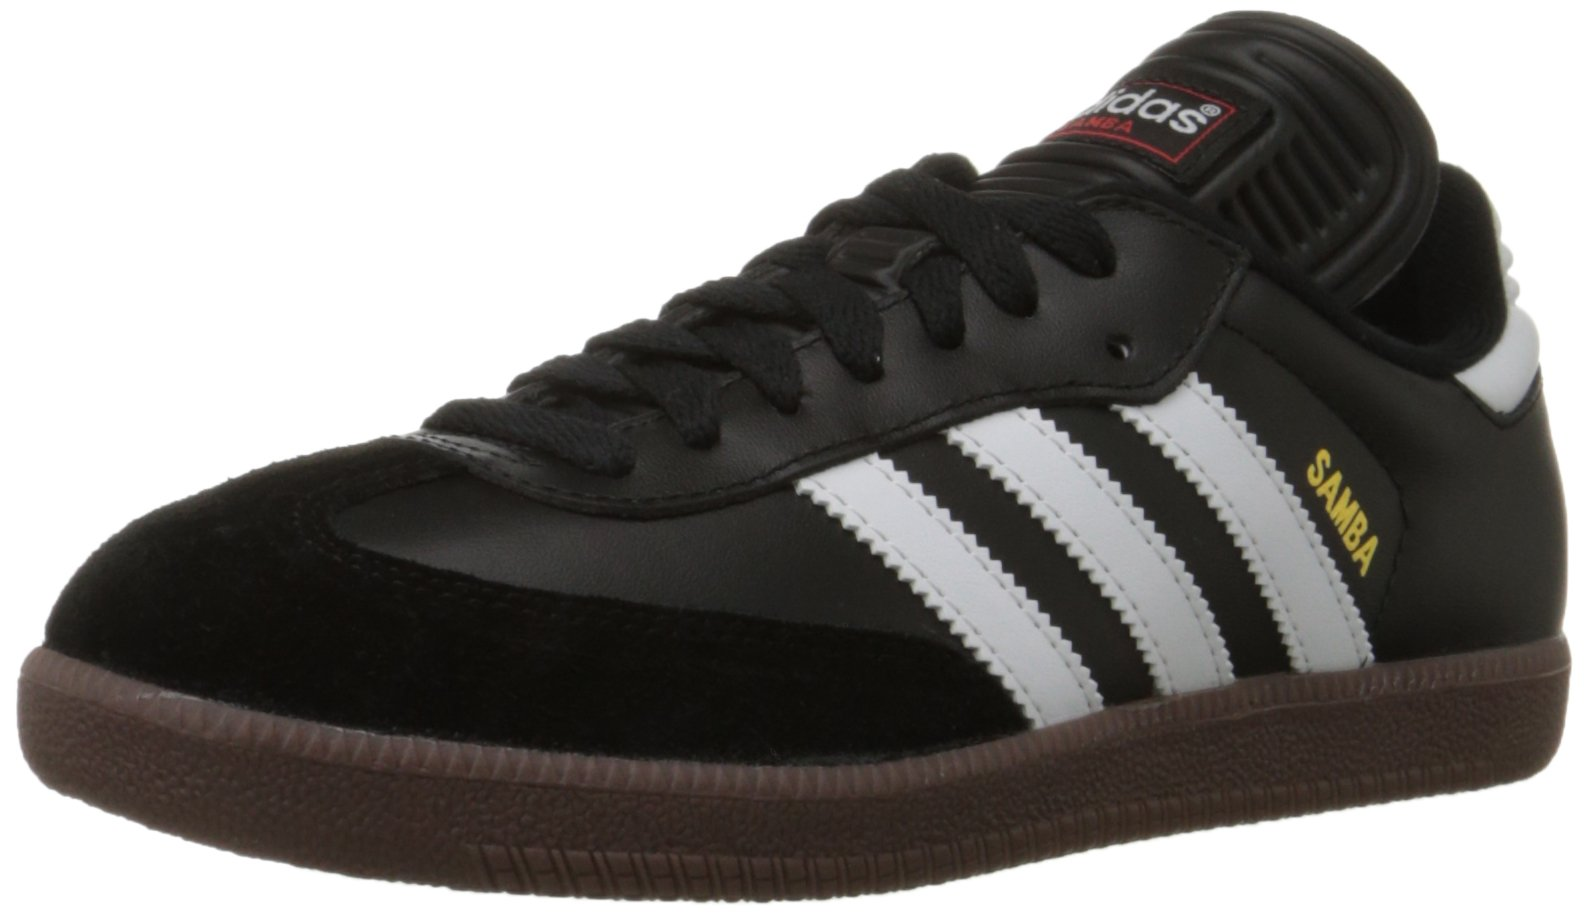 adidas Men's Samba Classic Soccer Shoe,Black/Running White,11 M US